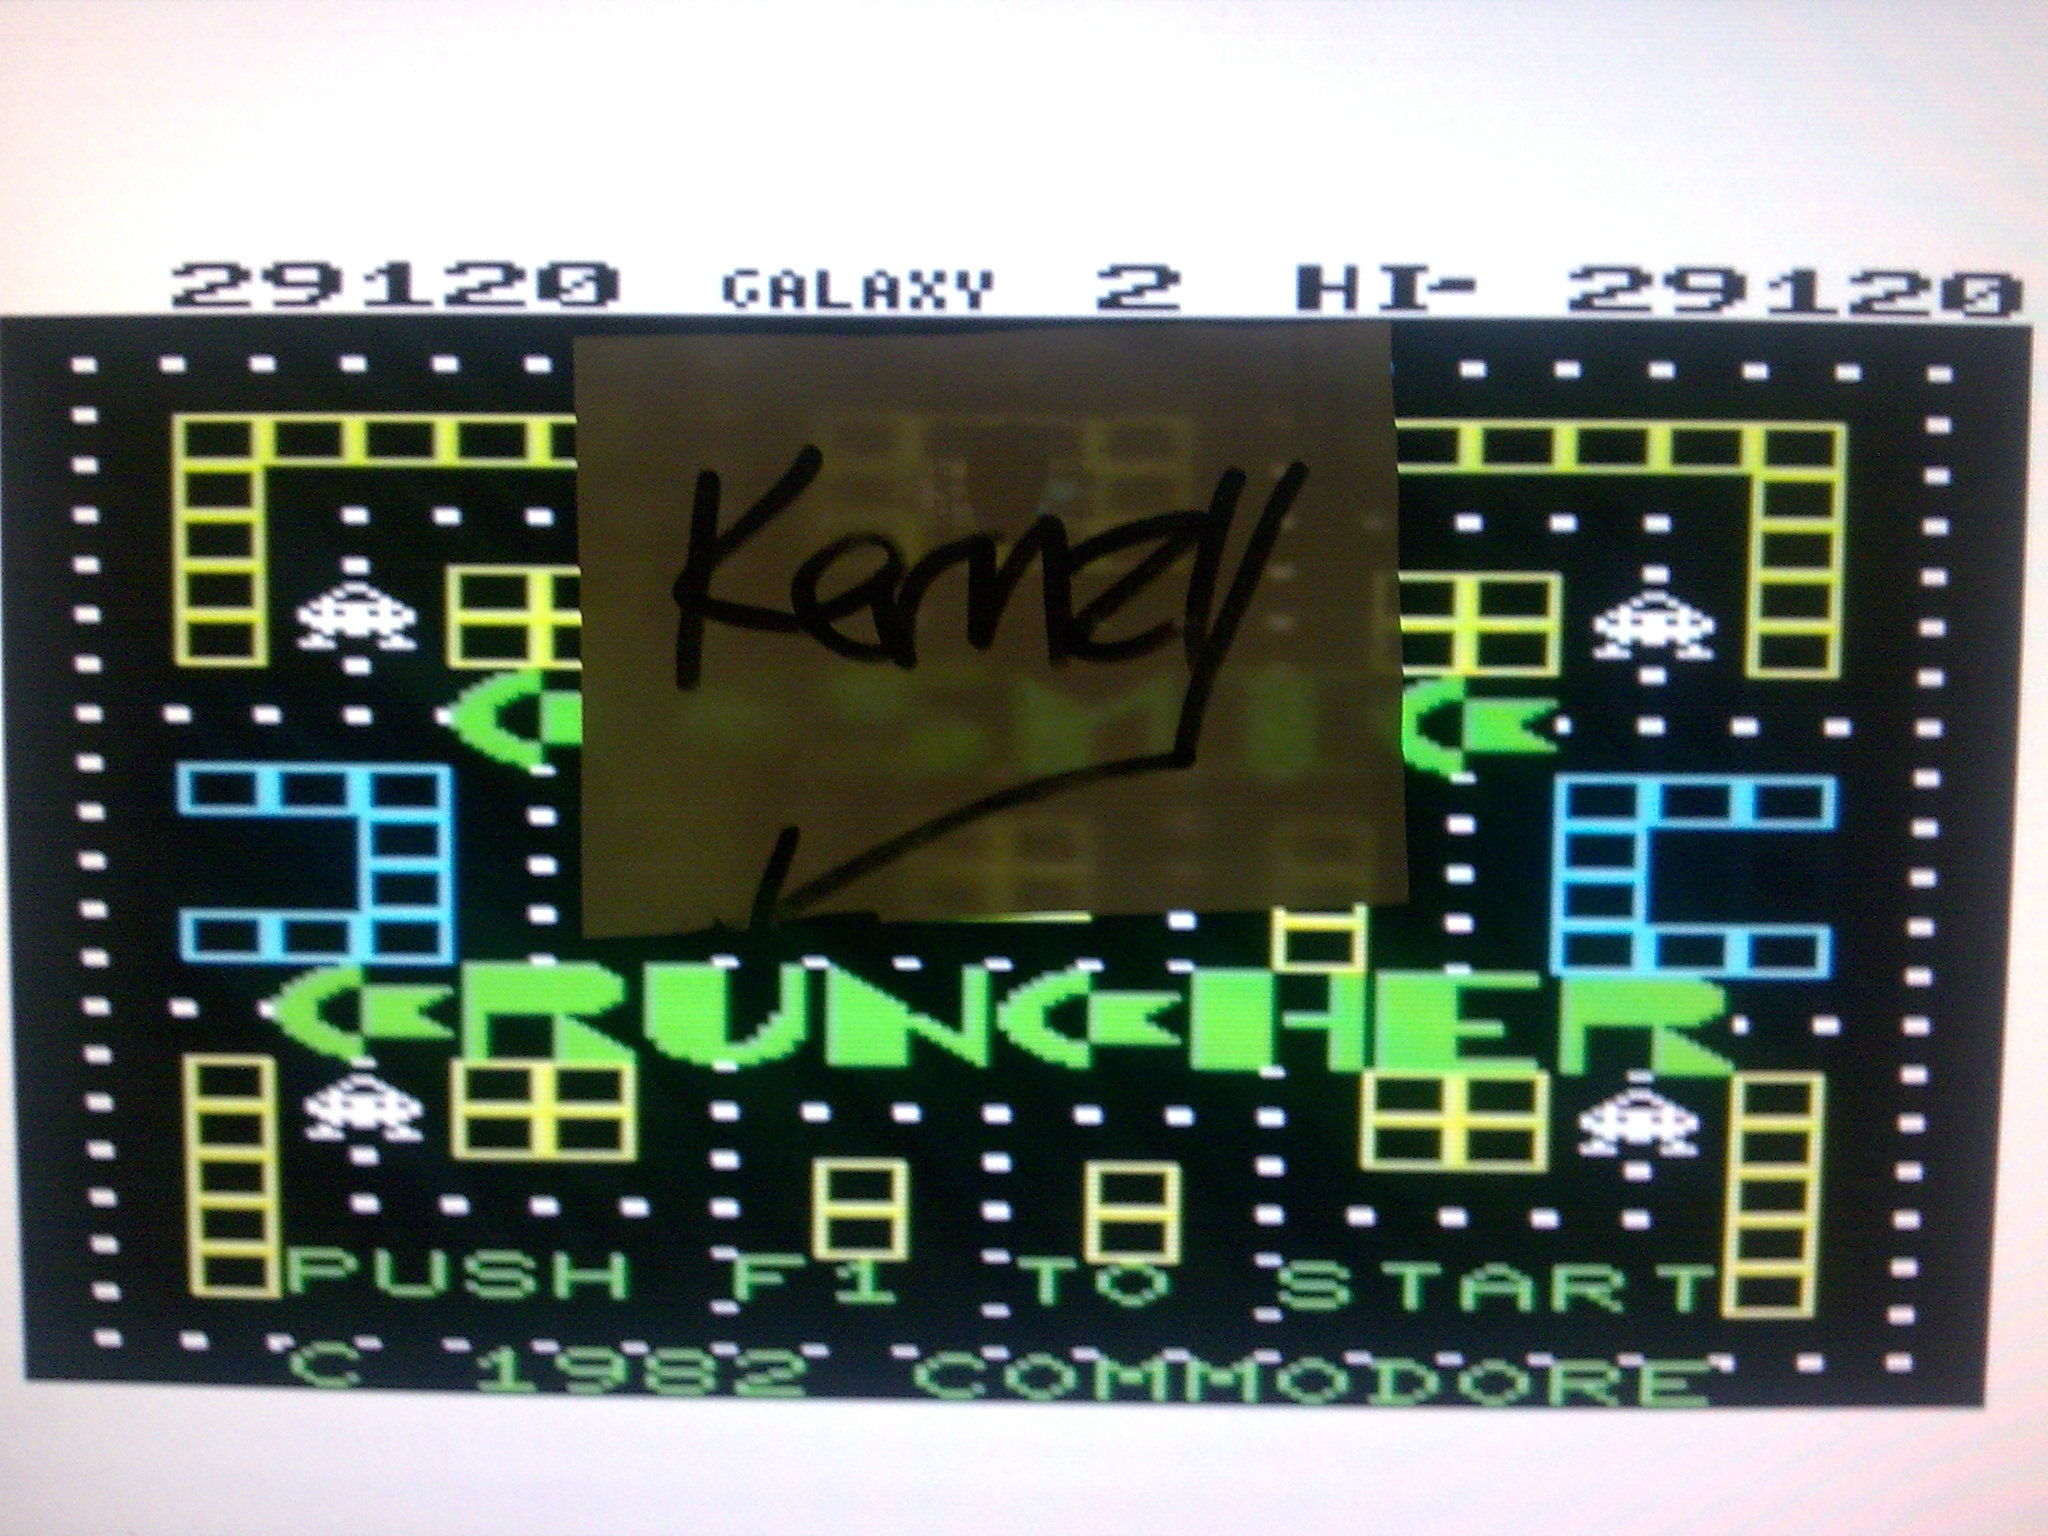 kernzy: Cosmic Cruncher (Commodore VIC-20 Emulated) 29,120 points on 2014-08-30 08:32:38